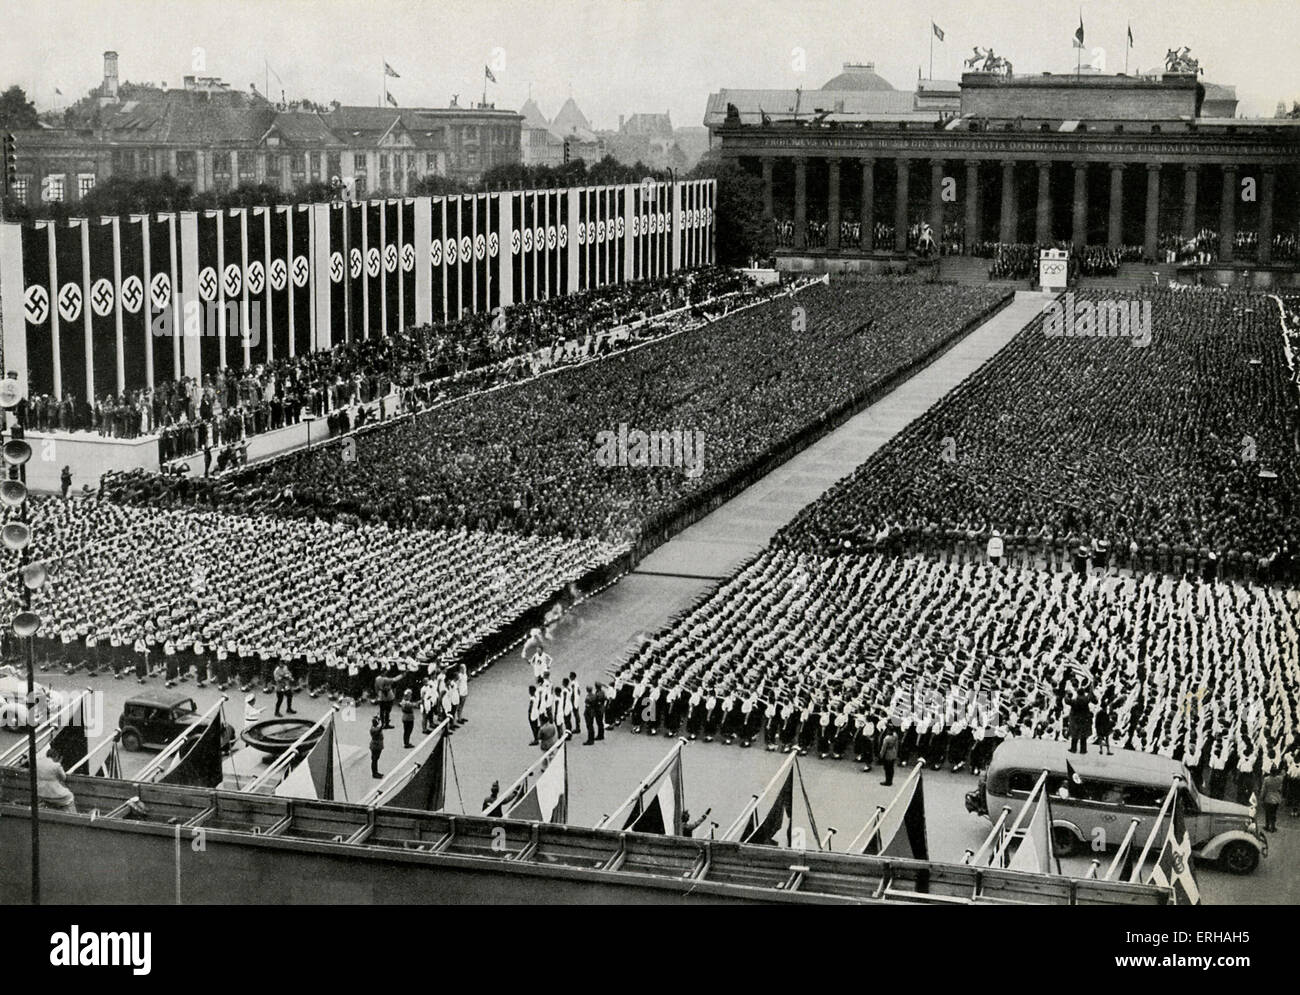 Rally of the German youth on the Lustgarten, 1st August, 1936, as part of the opening ceremony for the 1936 Berlin - Stock Image